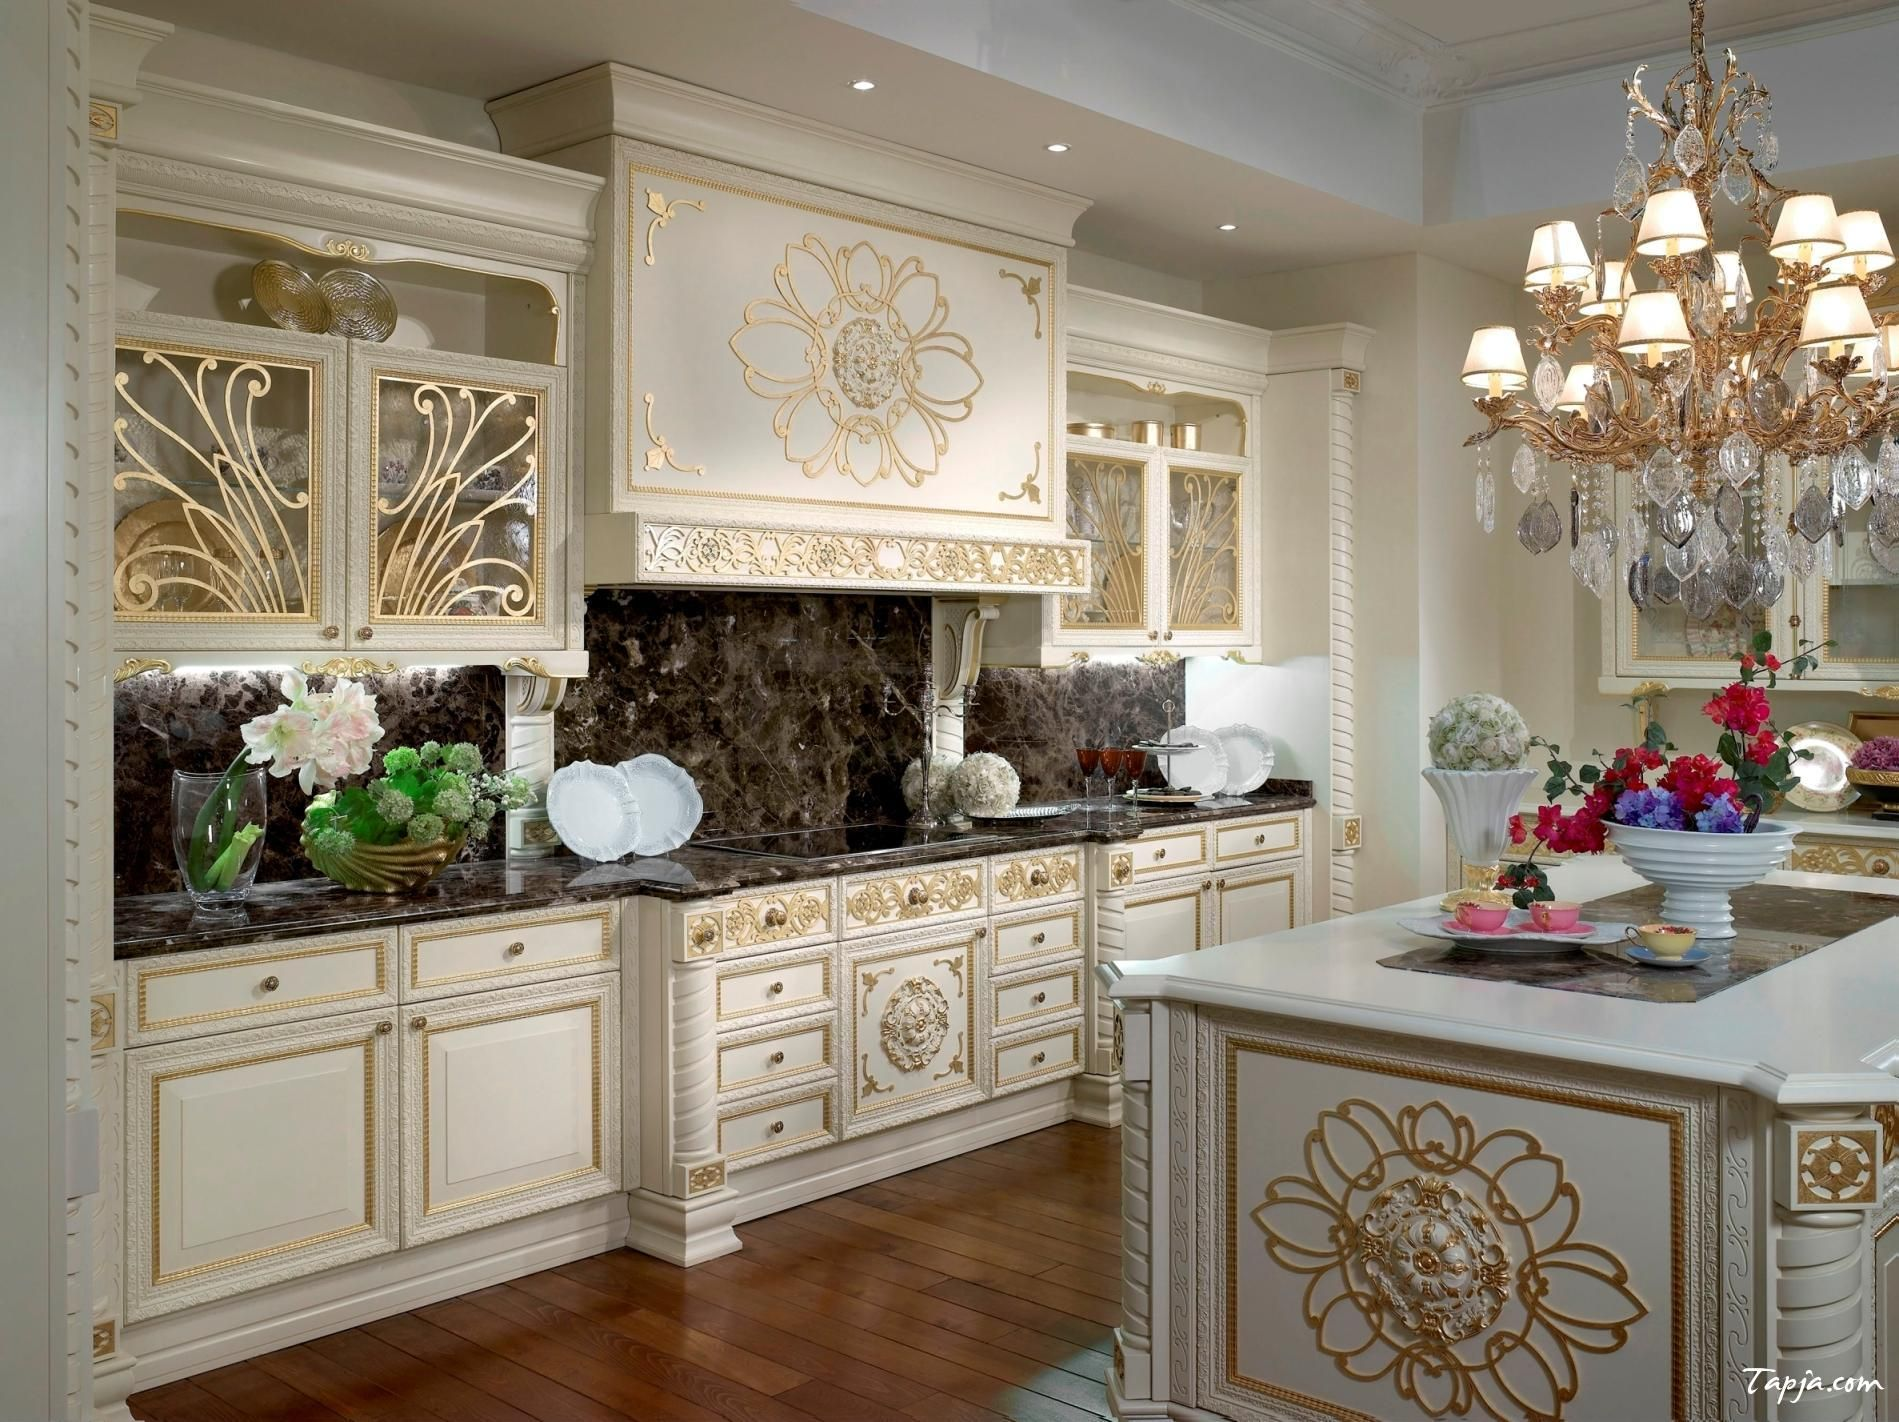 Classy Luxury Photo Kitchen Design With White Gold Kitchen Cabinet And Fancy  Chandelier Above Kitchen Island